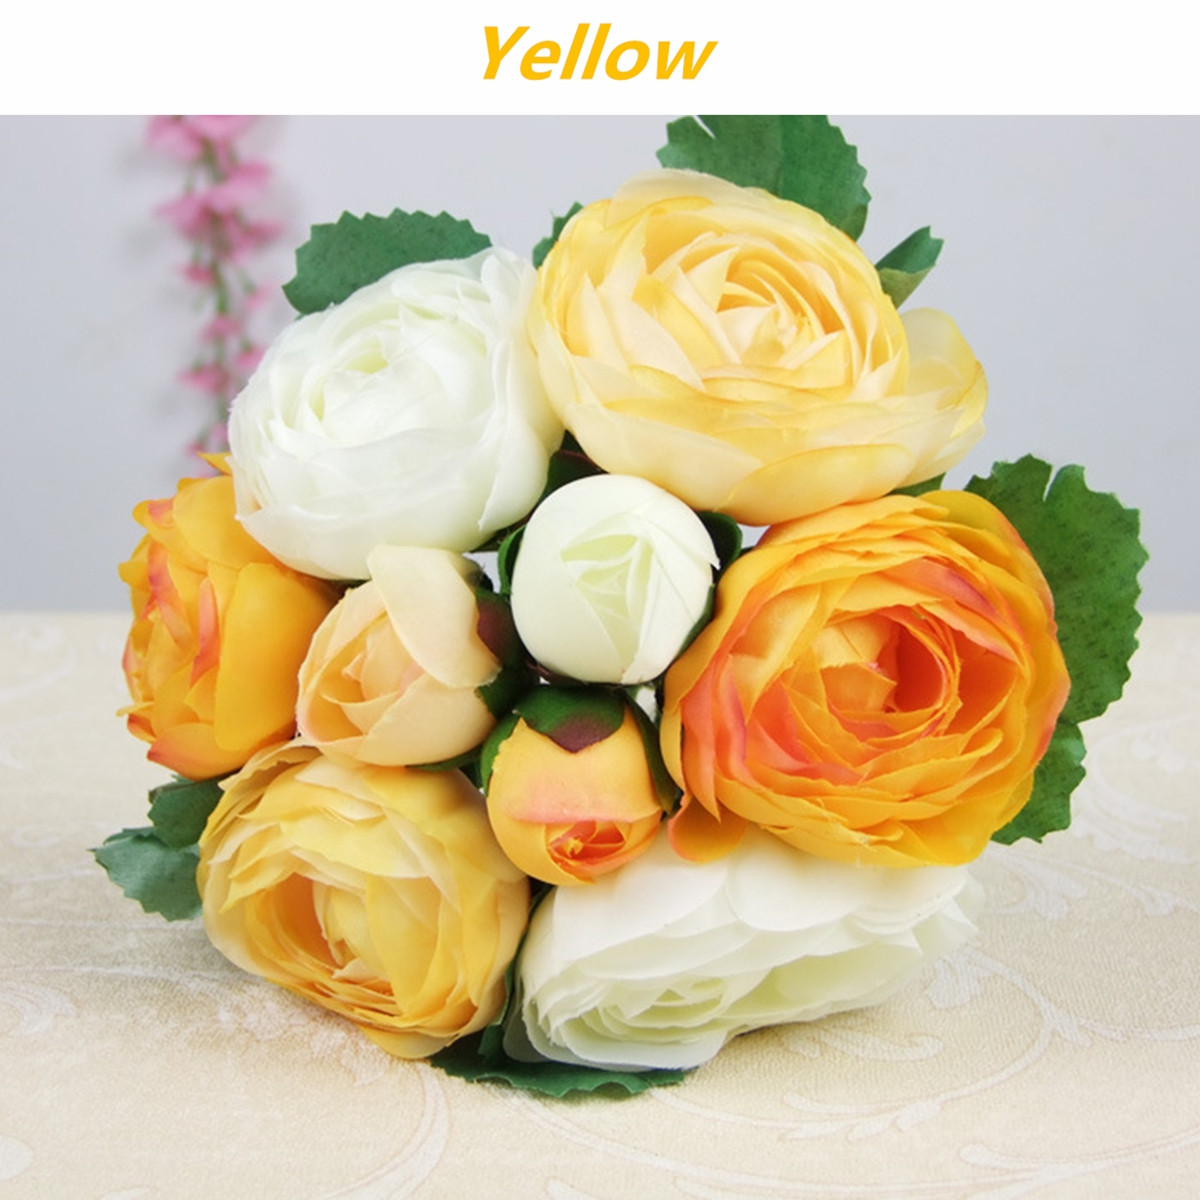 Artificial Silk Flower Peony Bouquet 9 Heads Flowers Home Cafe Decoration Wedding Bridal Party Decor